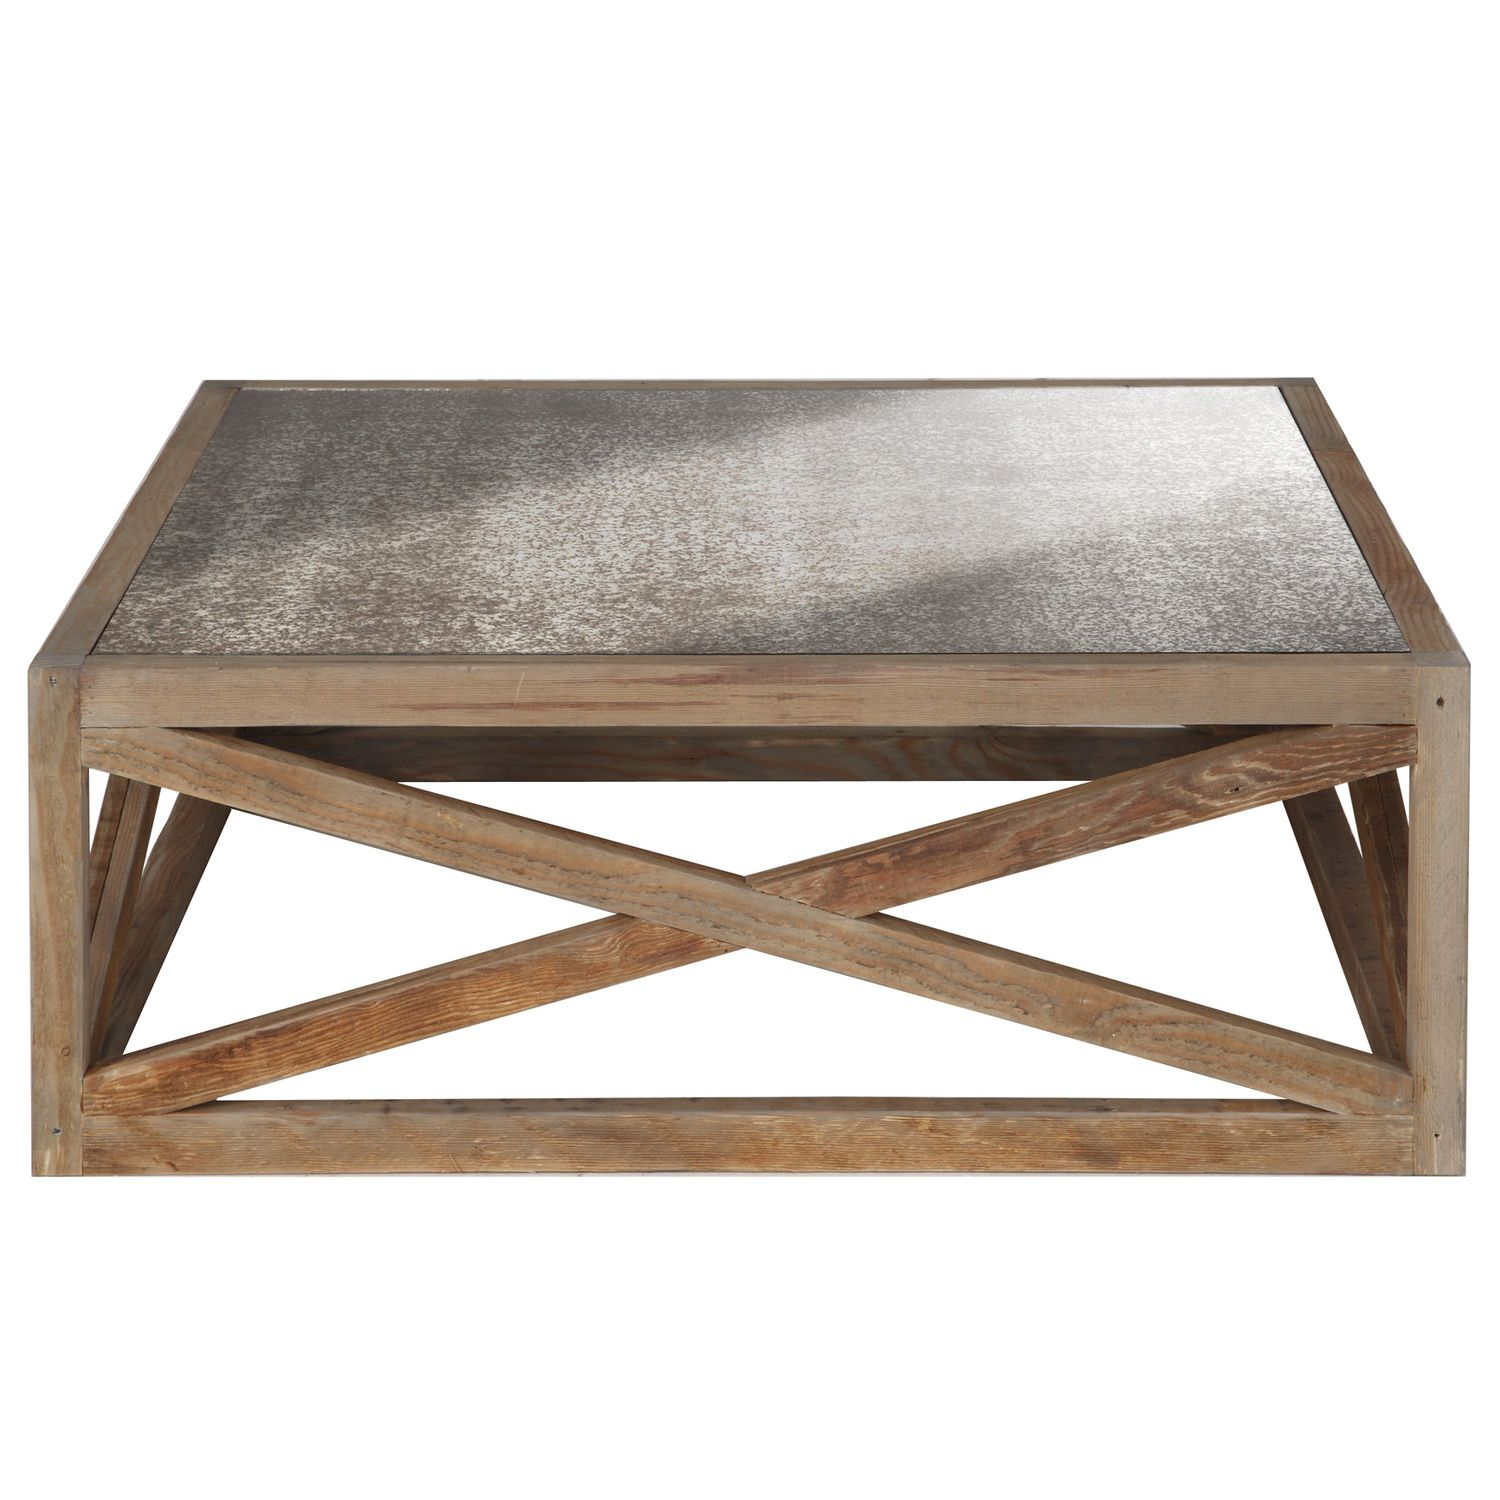 Benchmade By Brownstone Trenton Coffee Table @Layla Grayce